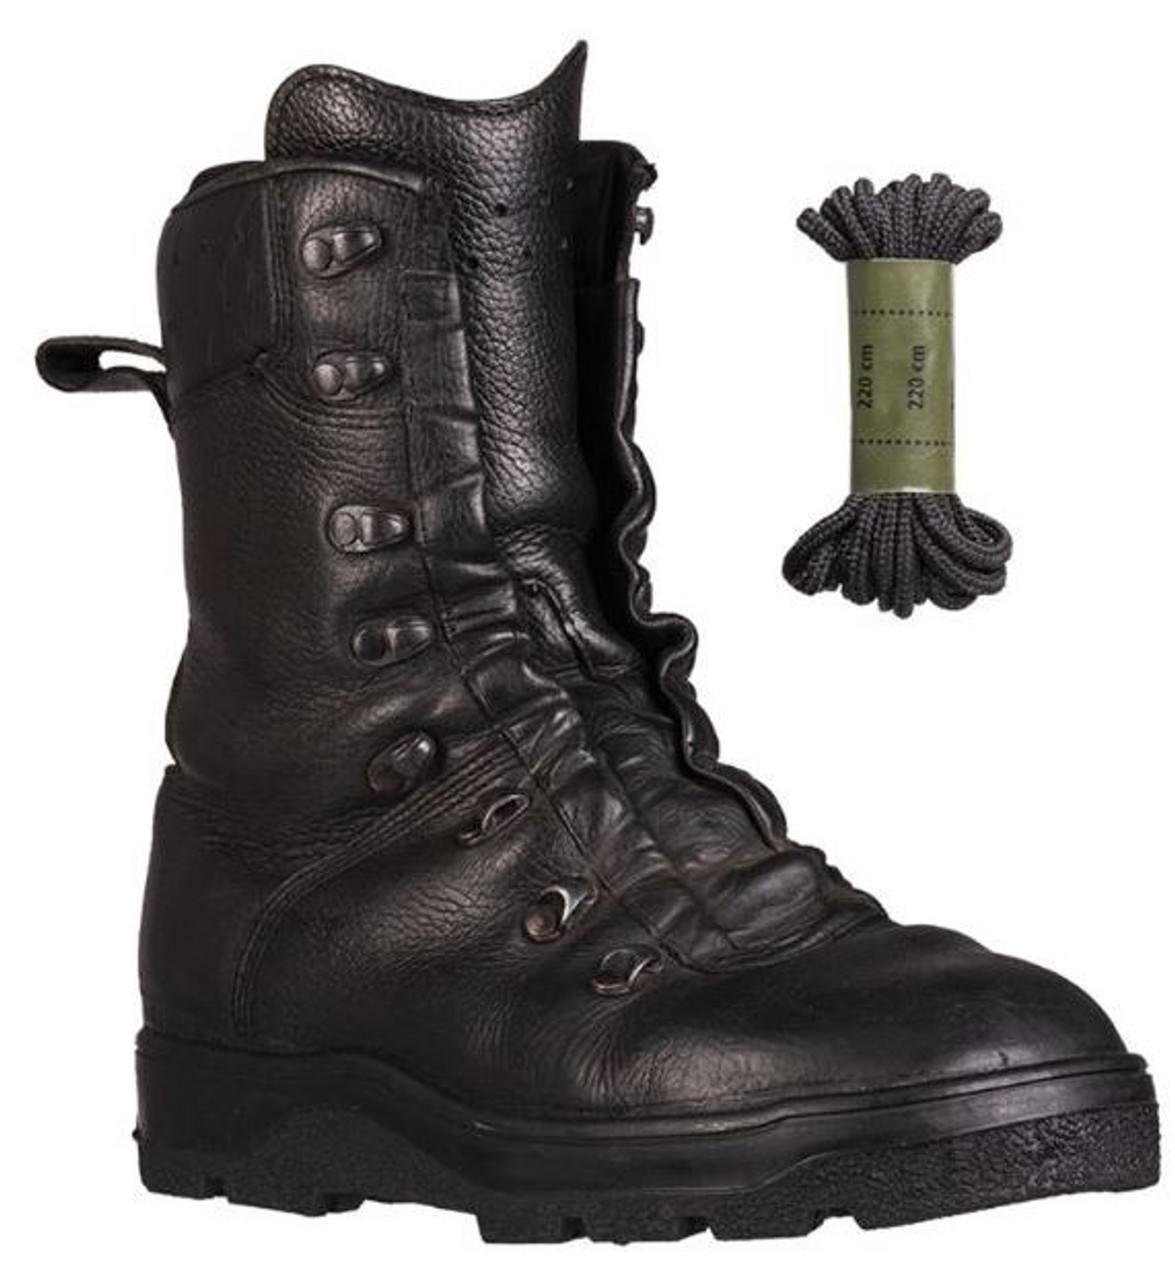 BW DMS Leather Combat Boots - Used